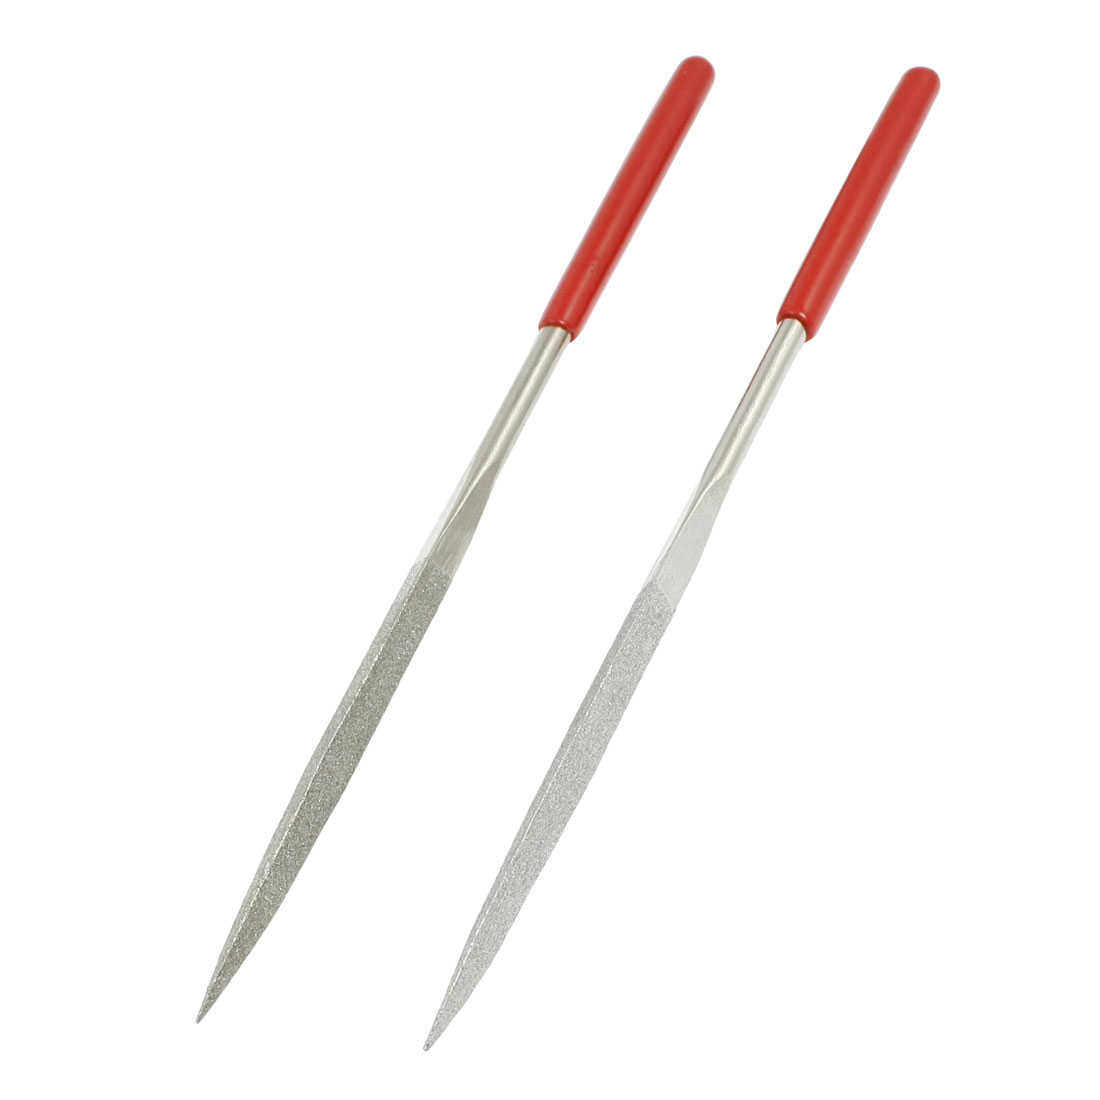 2 x Woodwork 4.5mm x 180mm Three Square Triangle Needle Files